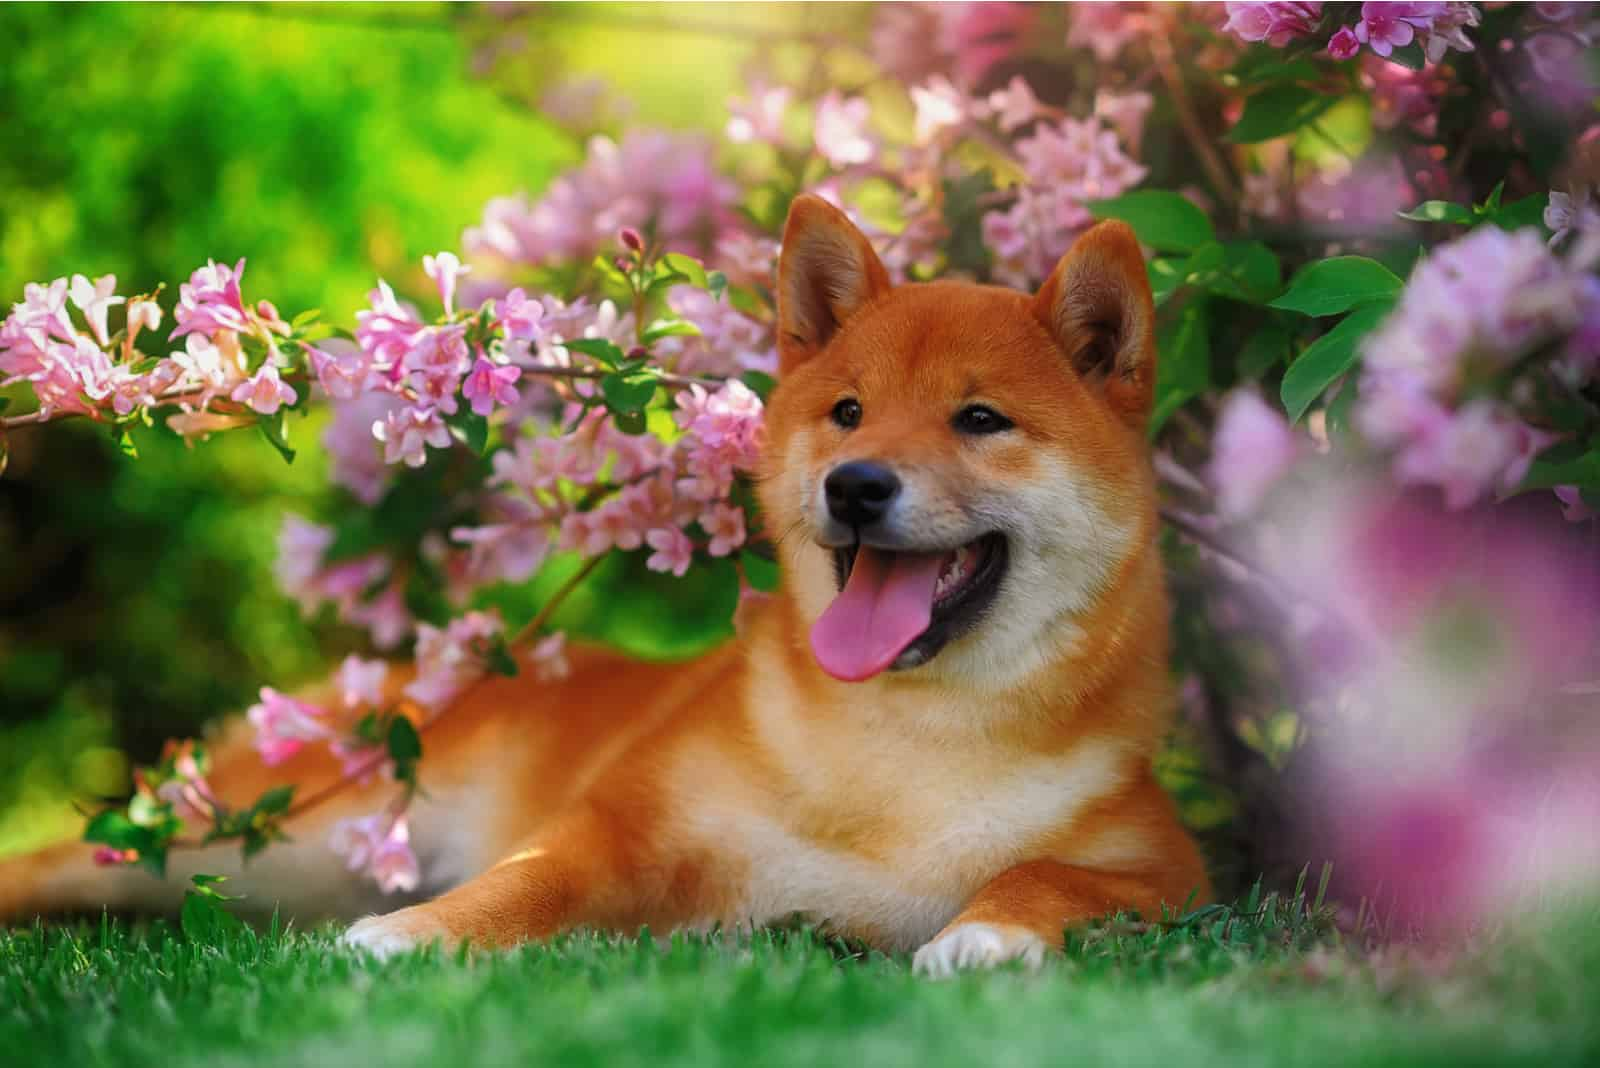 Dog lying in nature